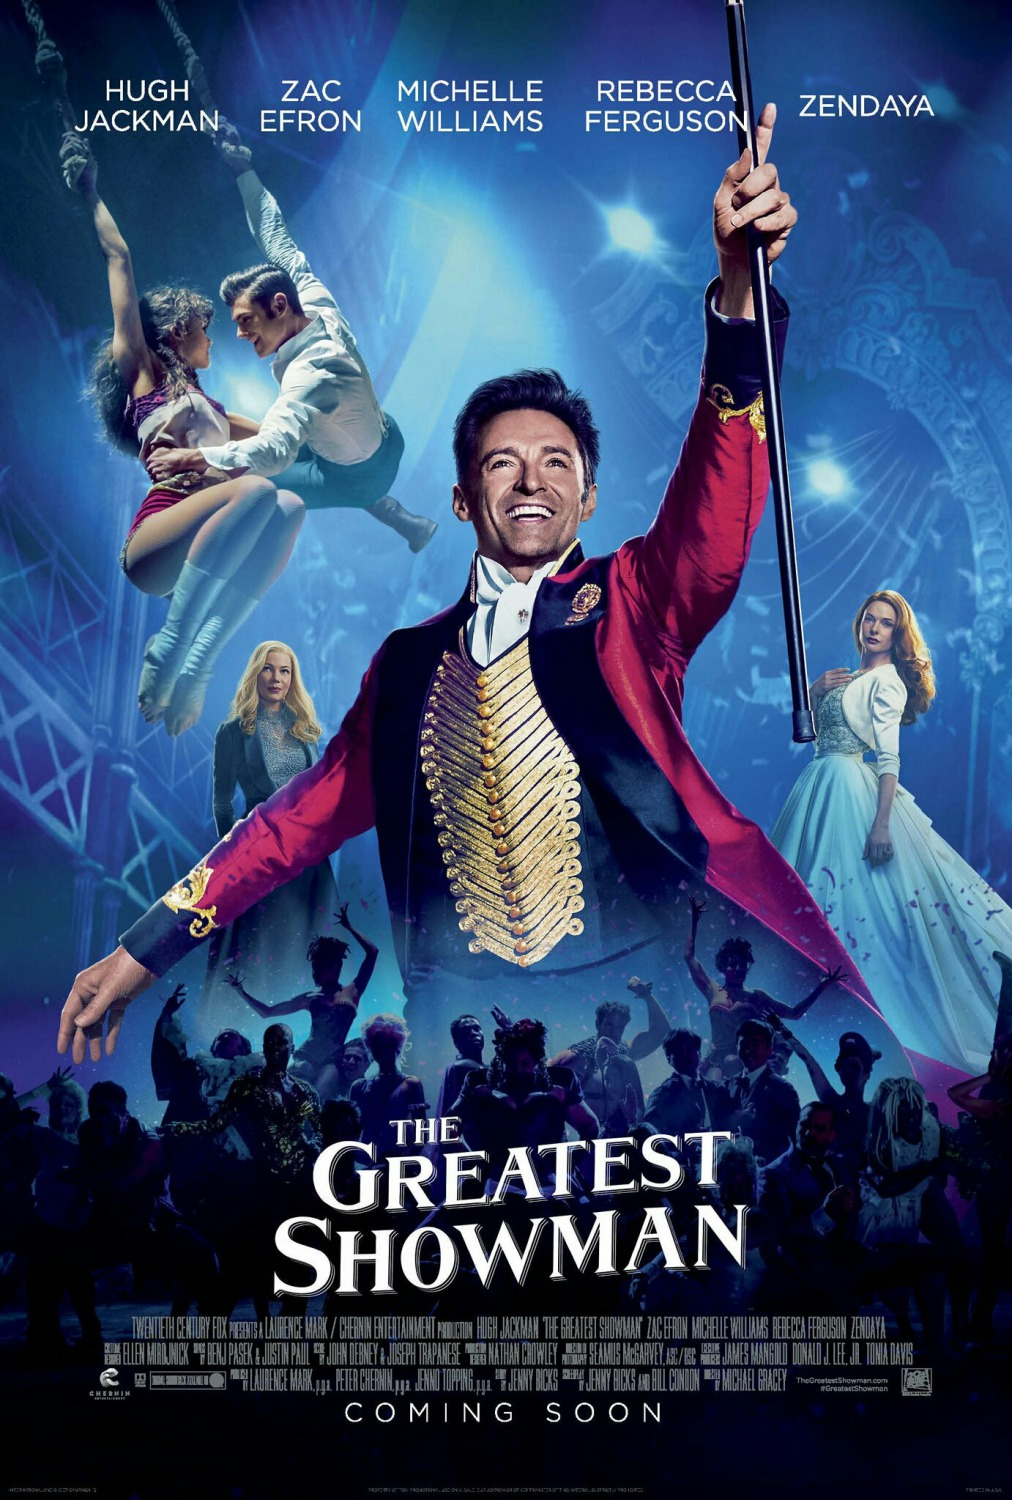 17 The Greatest Showman